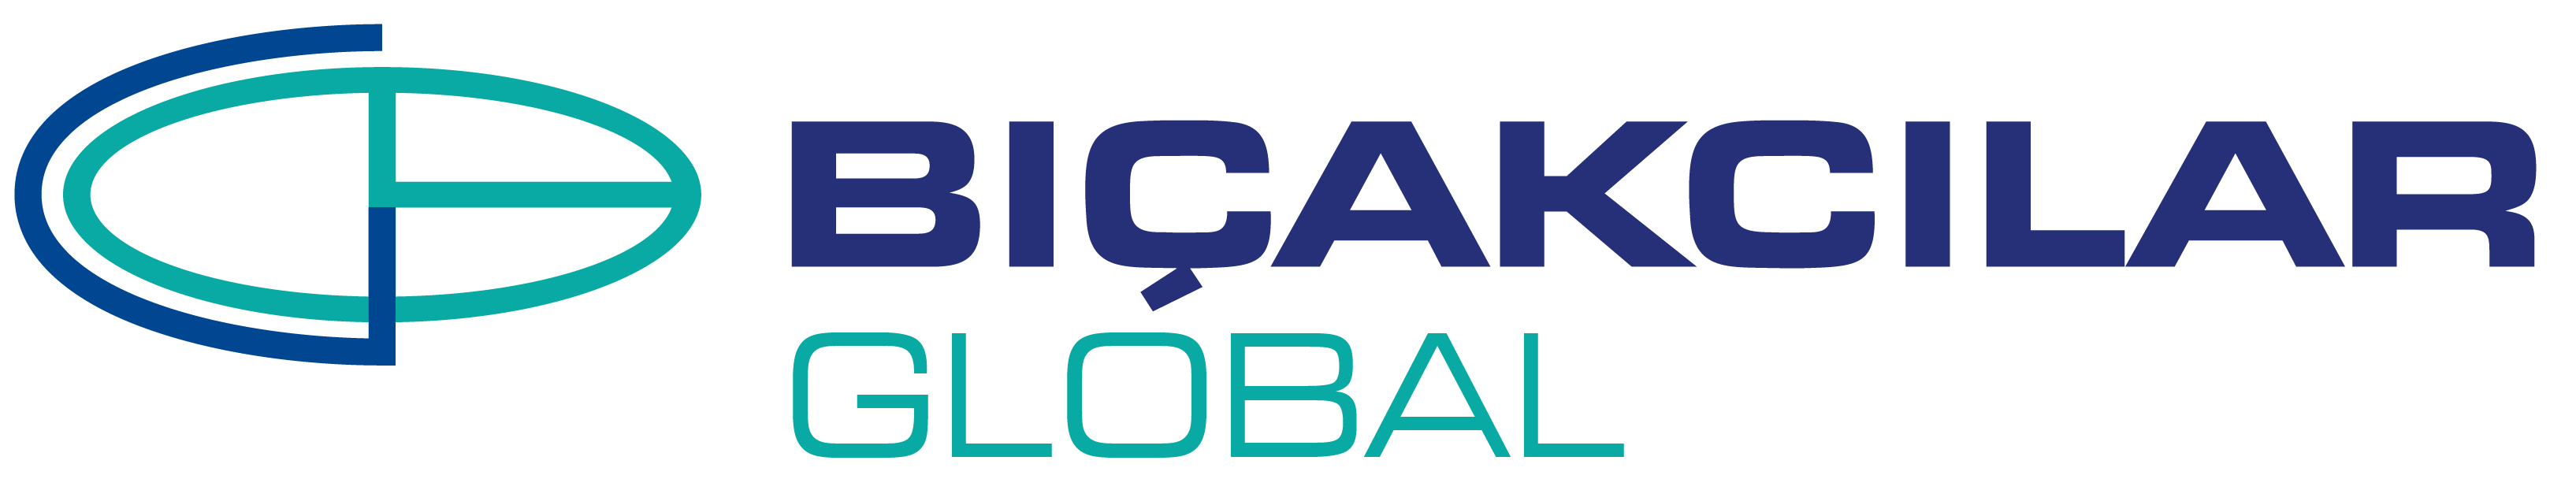 BICAKCILARGLOBAL